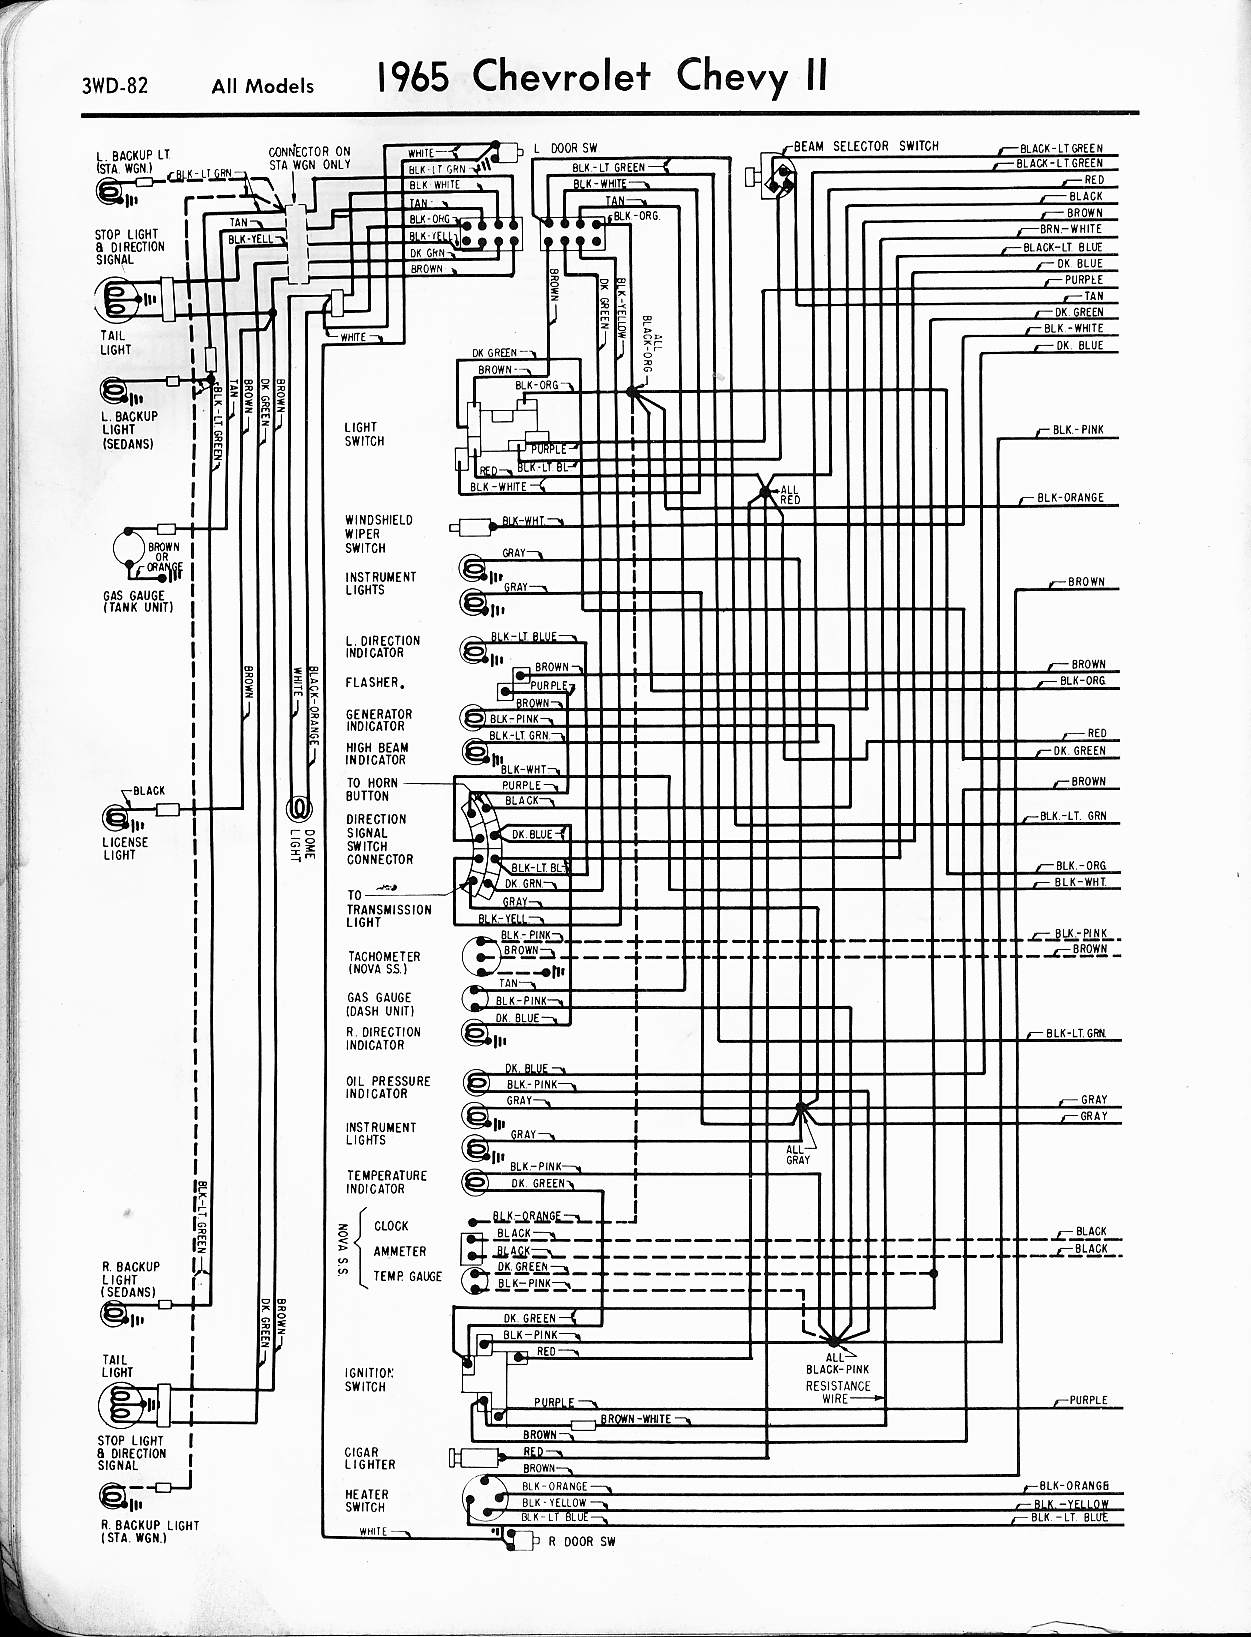 1967 chevy c10 wiring diagram 1967 image wiring 65 chevelle wiring diagram 65 auto wiring diagram schematic on 1967 chevy c10 wiring diagram